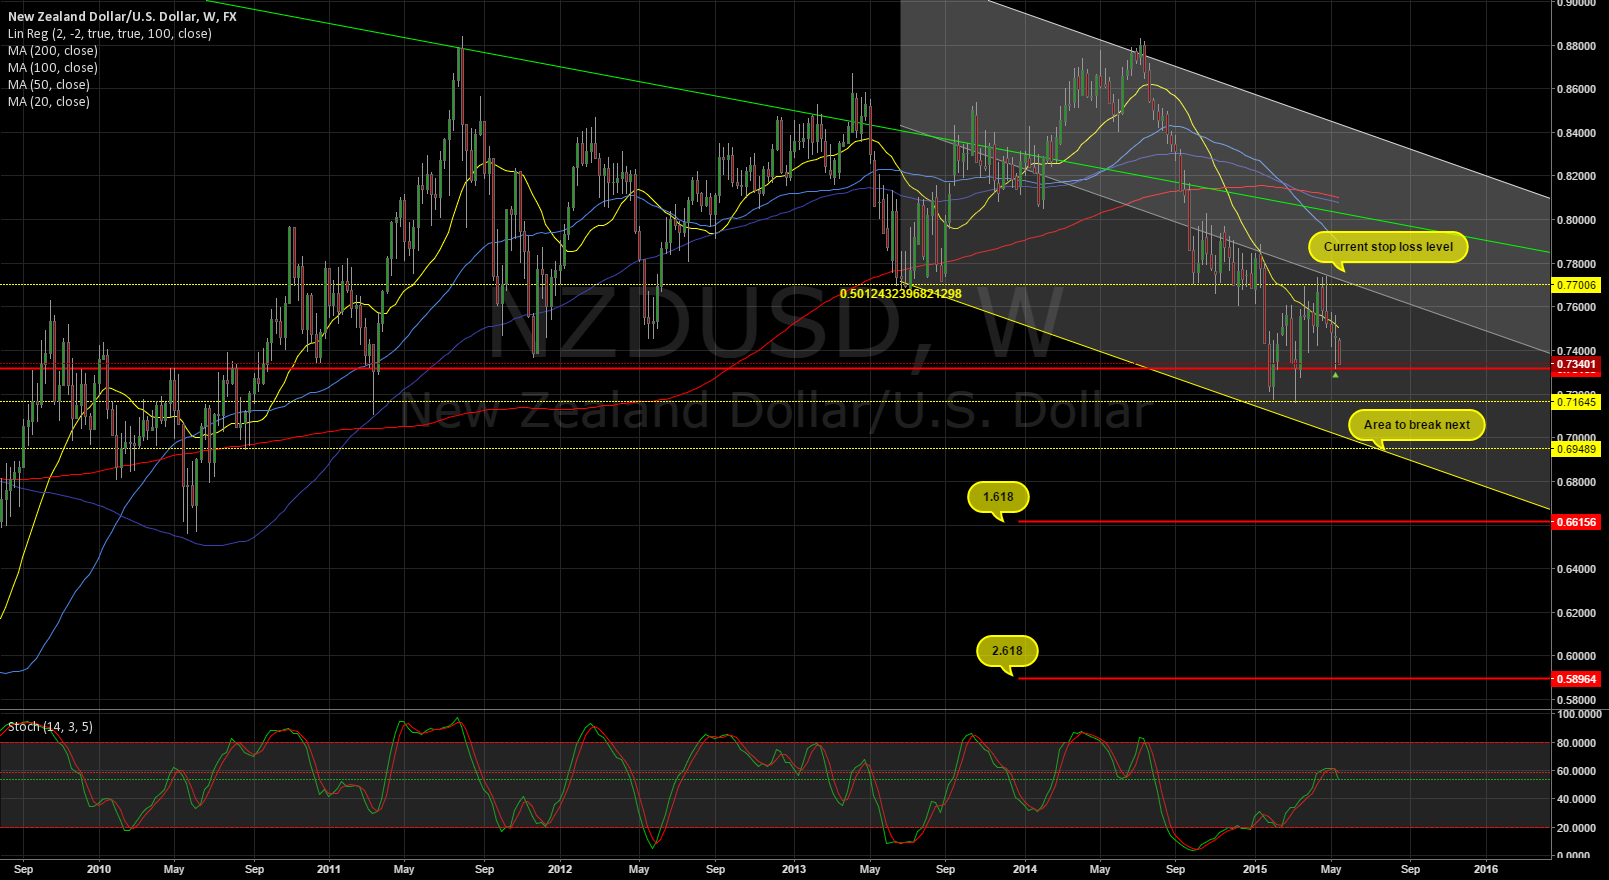 Here is why you should go long  XXX/NZD or go short on  NZD/XXX